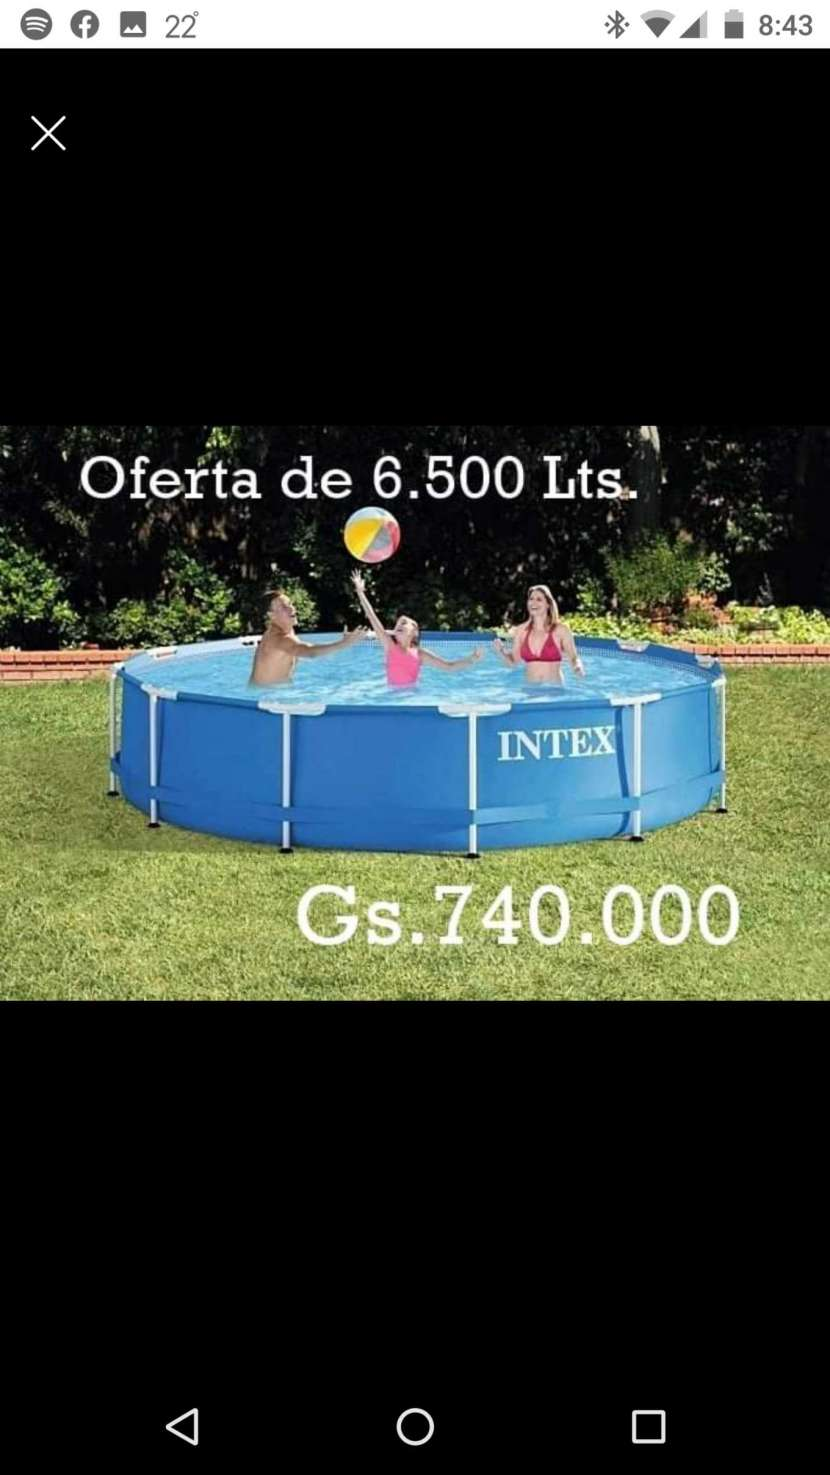 Piscinas Intex de 6.500 litros - 0